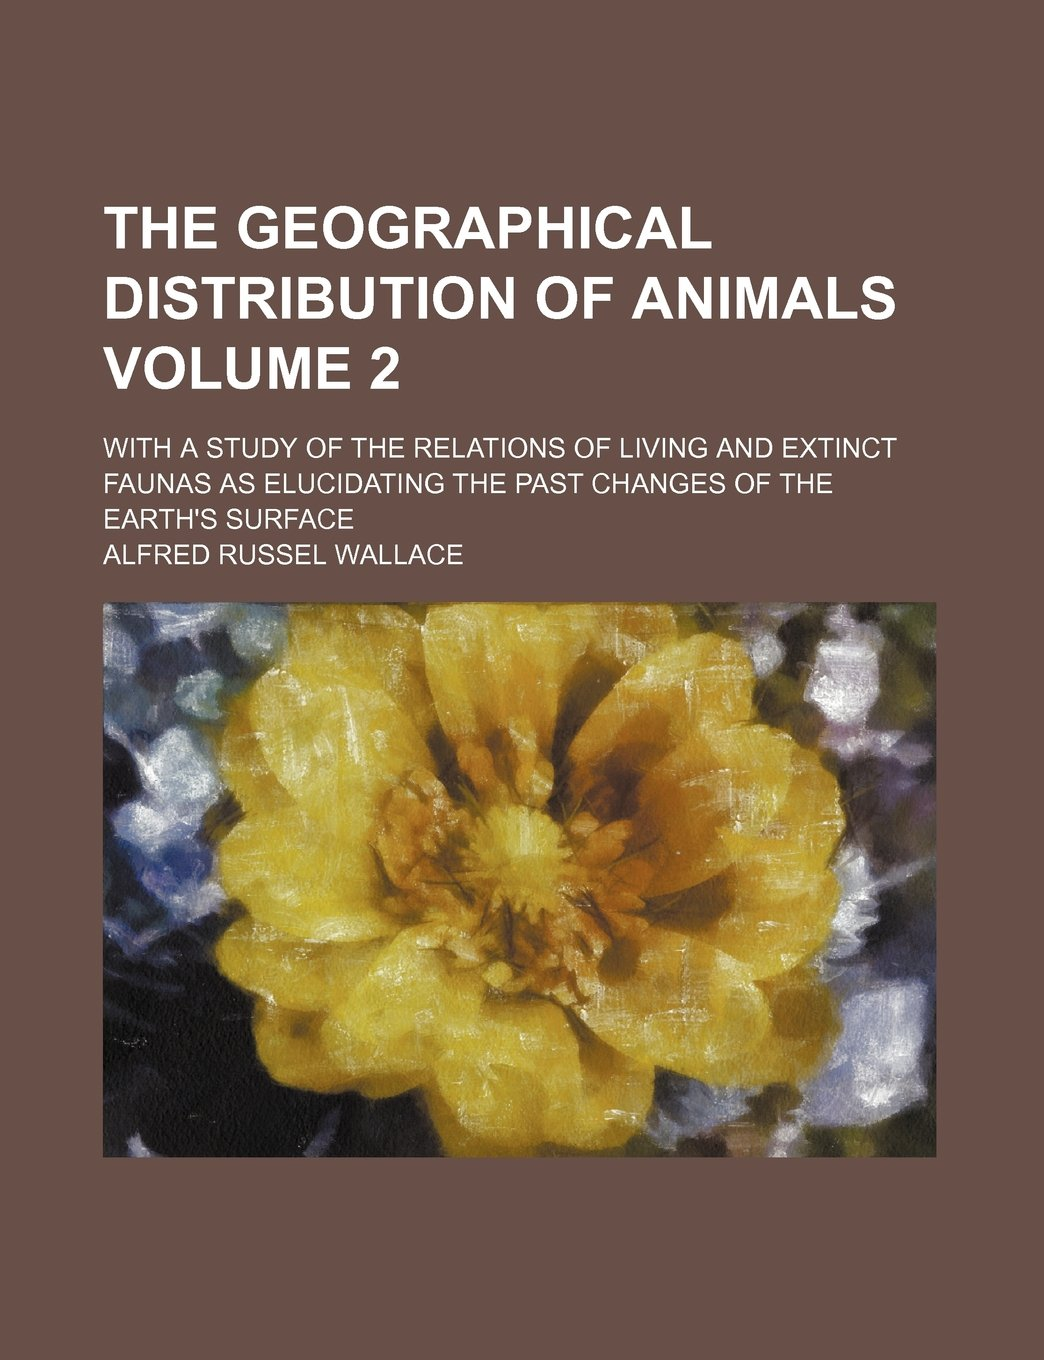 Read Online The geographical distribution of animals Volume 2; with a study of the relations of living and extinct faunas as elucidating the past changes of the earth's surface pdf epub